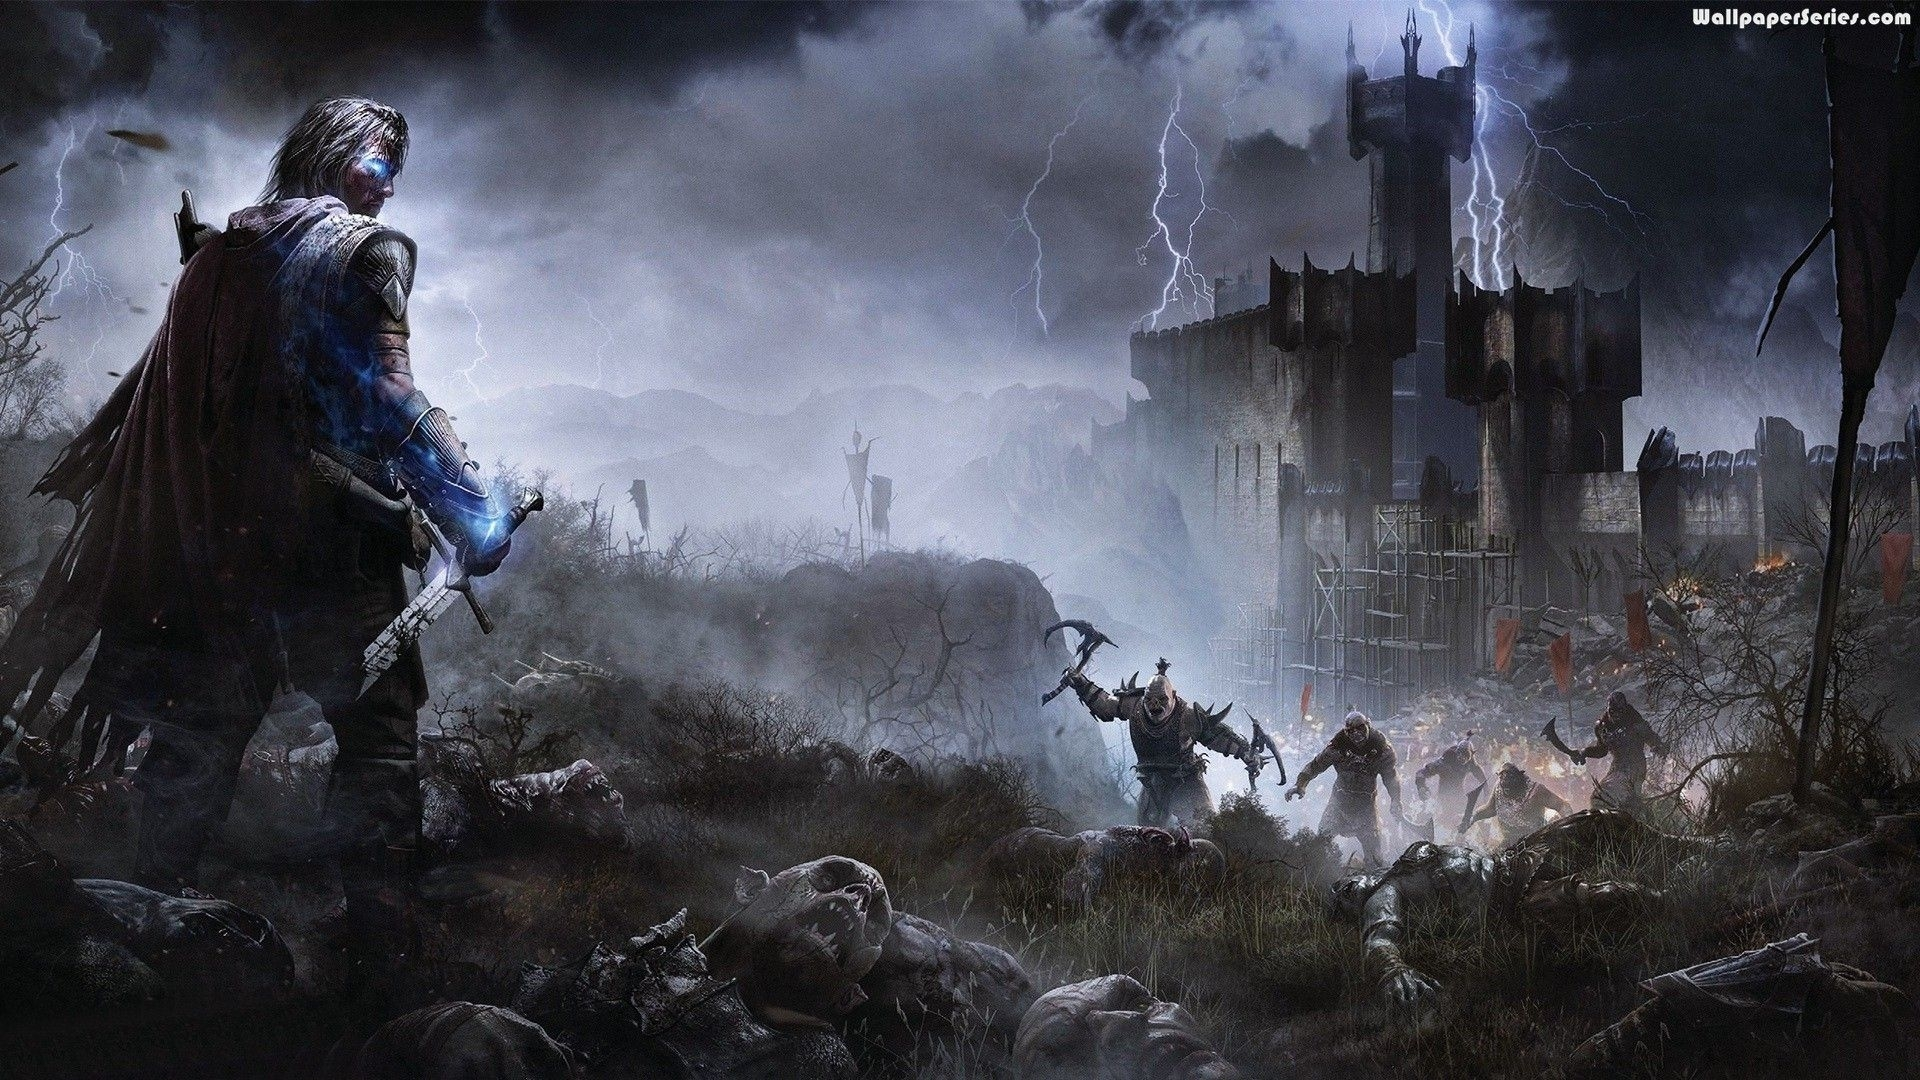 lumia video game/middleearth: shadow of mordor wallpaper 1920×1080